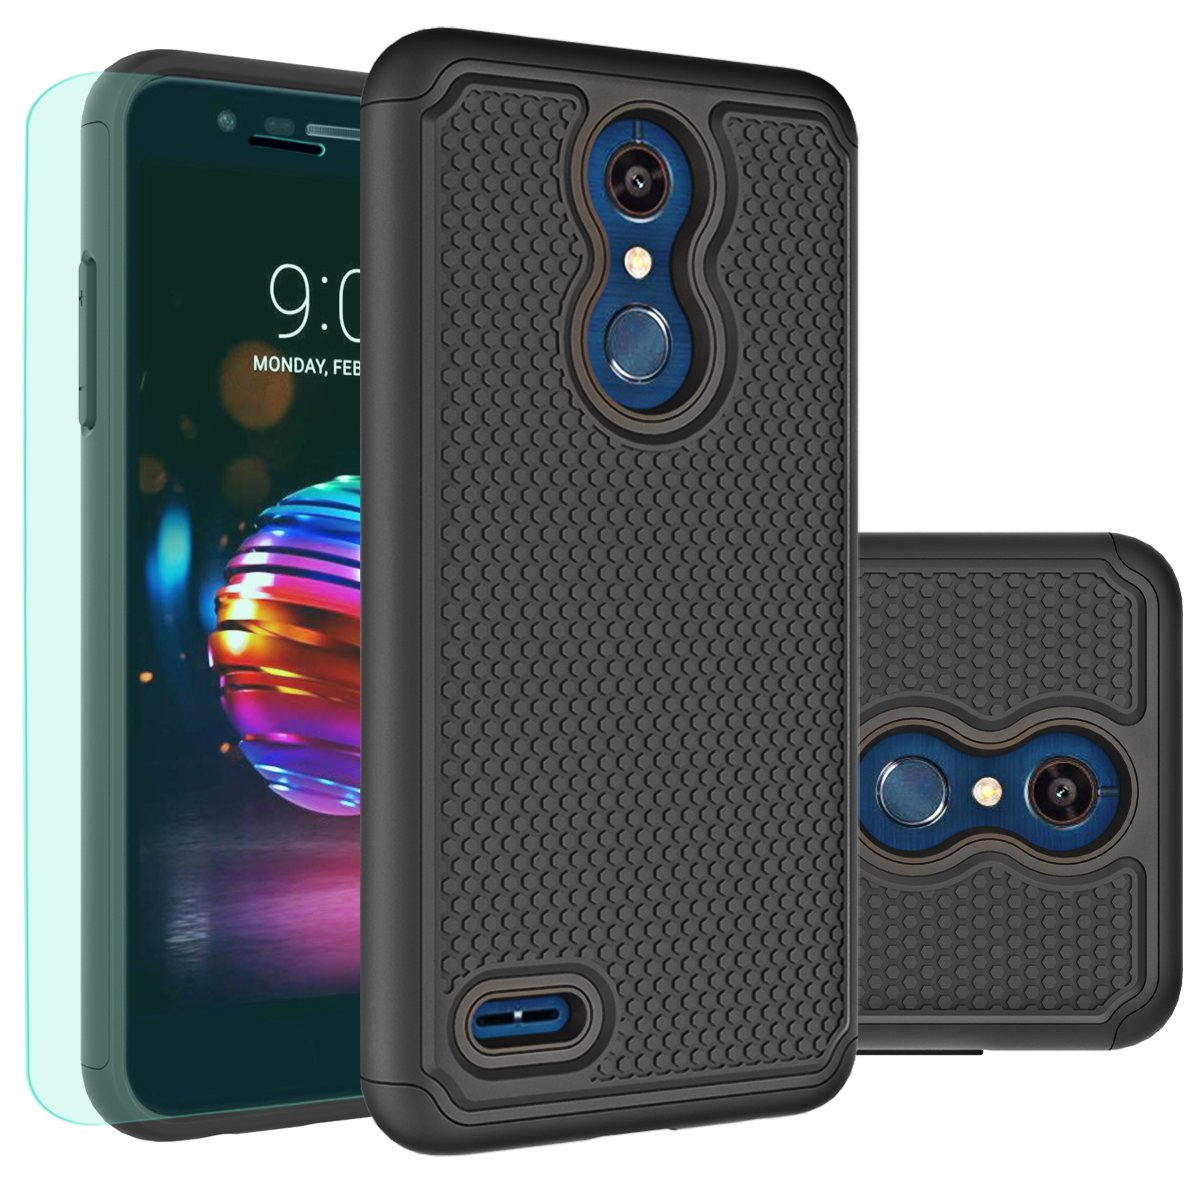 Amazon Com Huness Lg K30 Case Lg K10 2018 Case With Hd Screen Protector Durable Armor And Resilient Shock Absorption Case Cover For Lg K10 2018 Lg K30 Phone Black Electronics